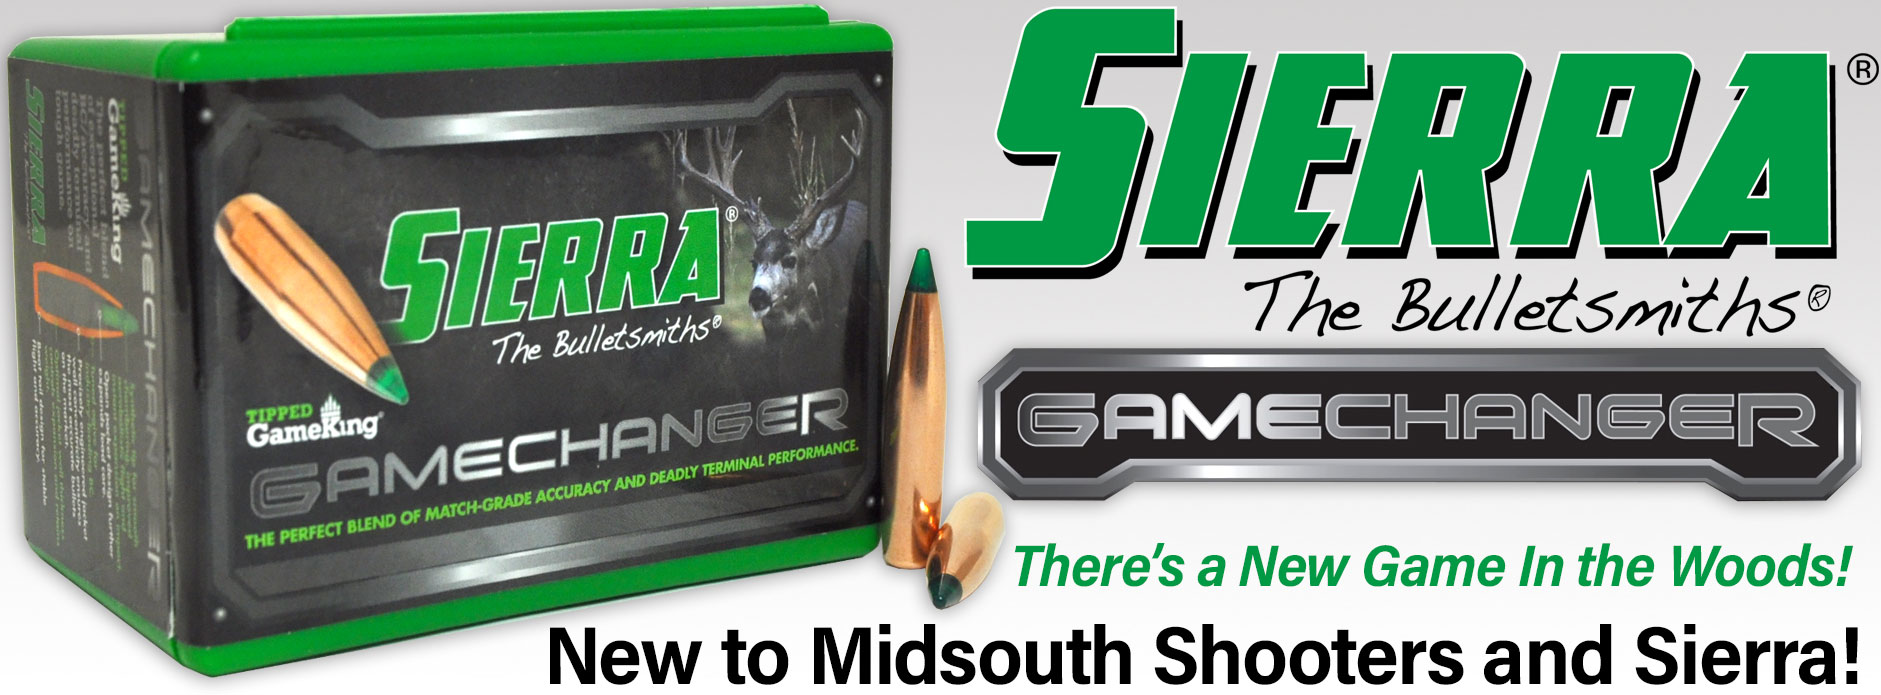 New Sierra GameChanger Bullets! | Midsouth Shooters Supply